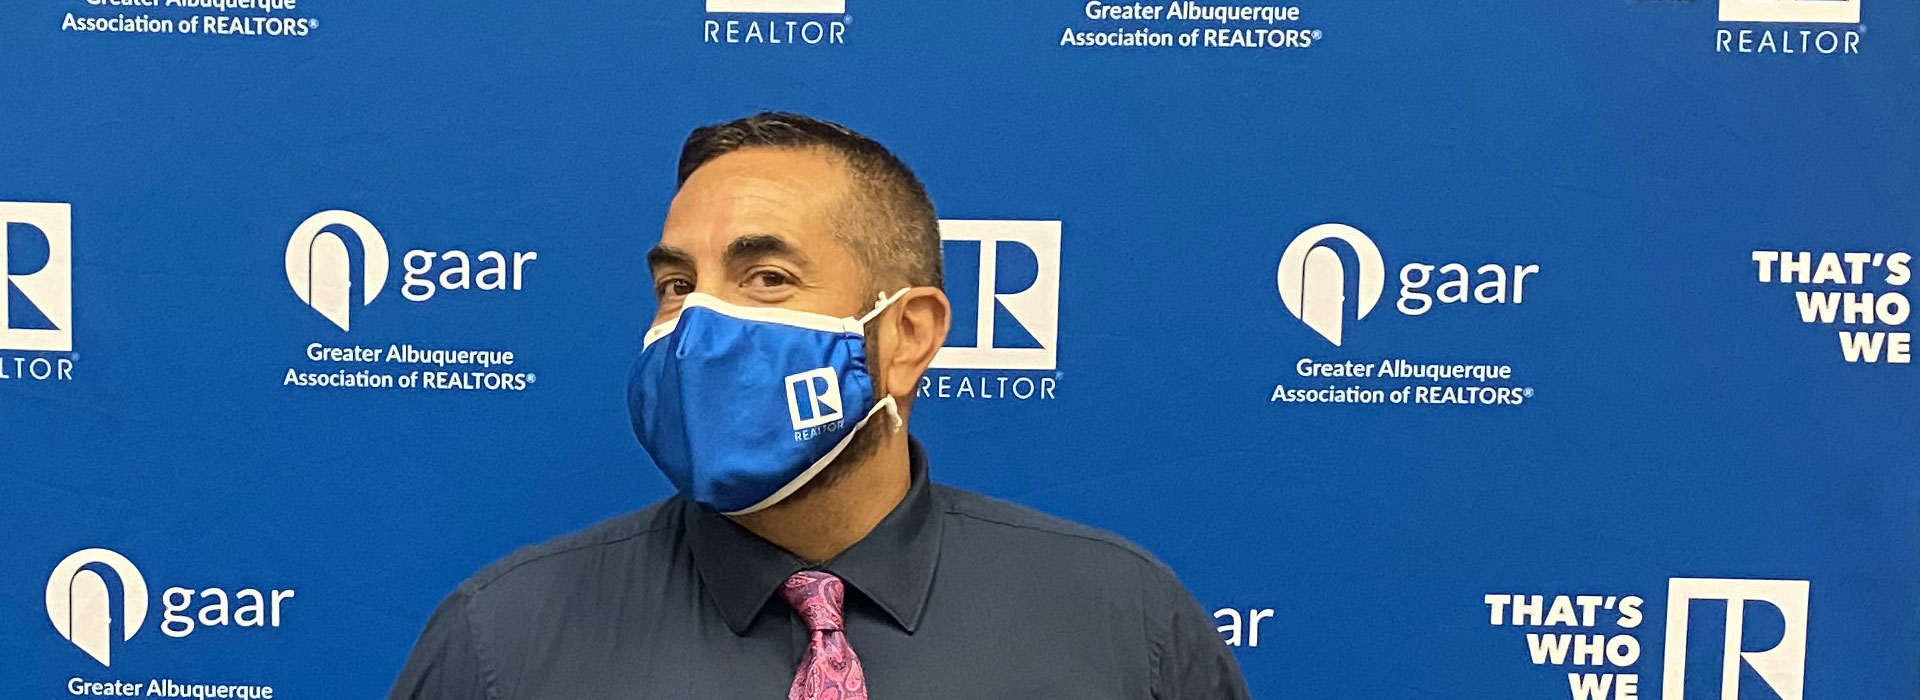 Get a REALTOR® Mask while supplies last!